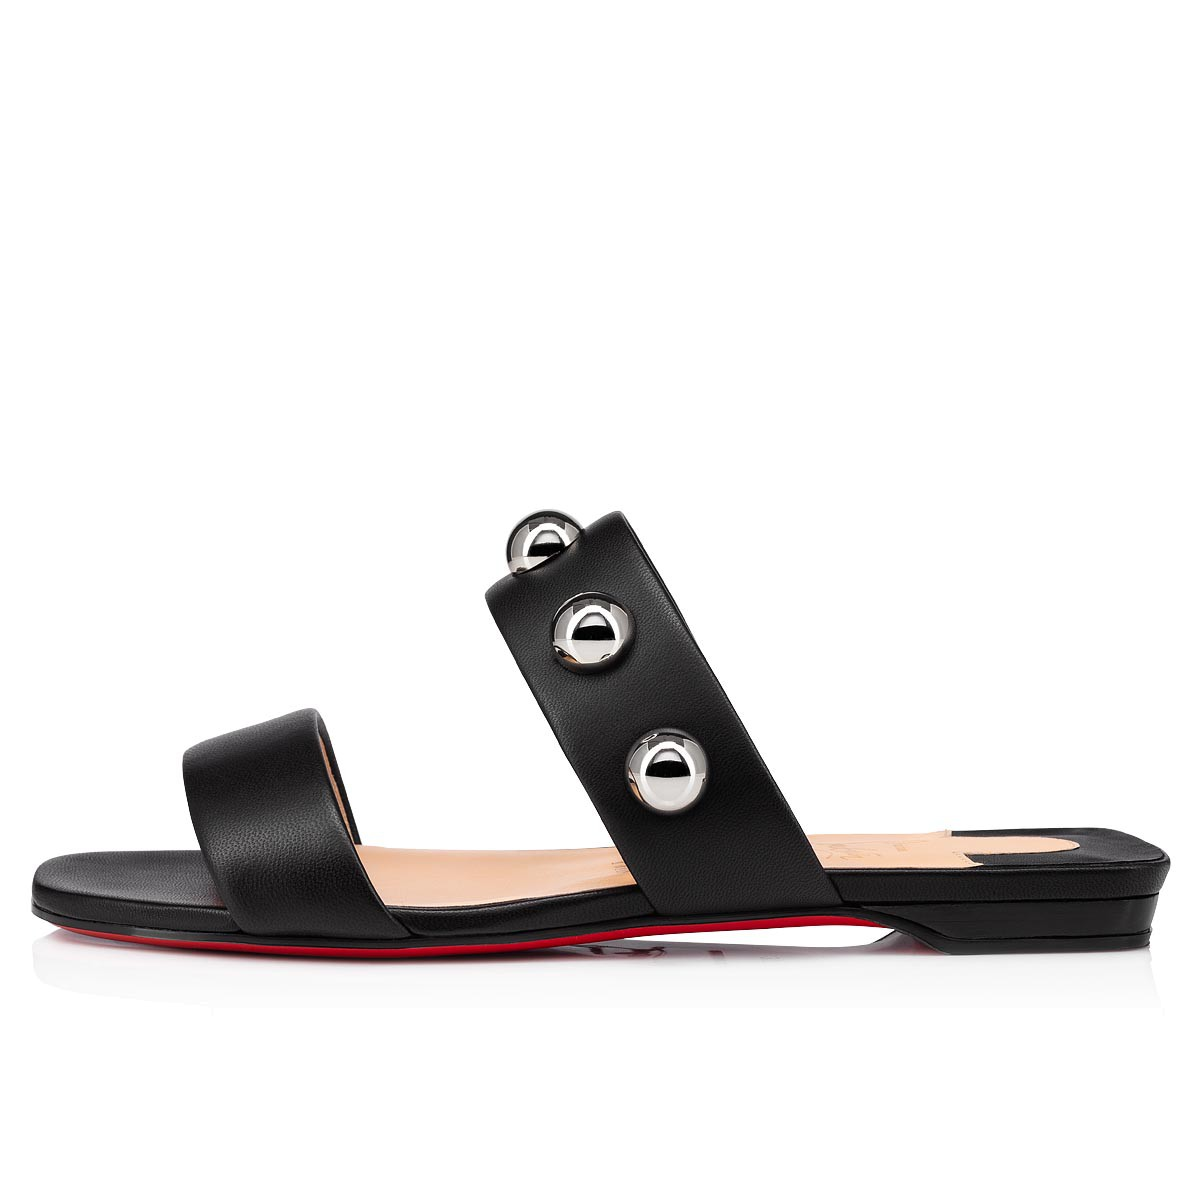 Shoes - Simple Bille Flat - Christian Louboutin